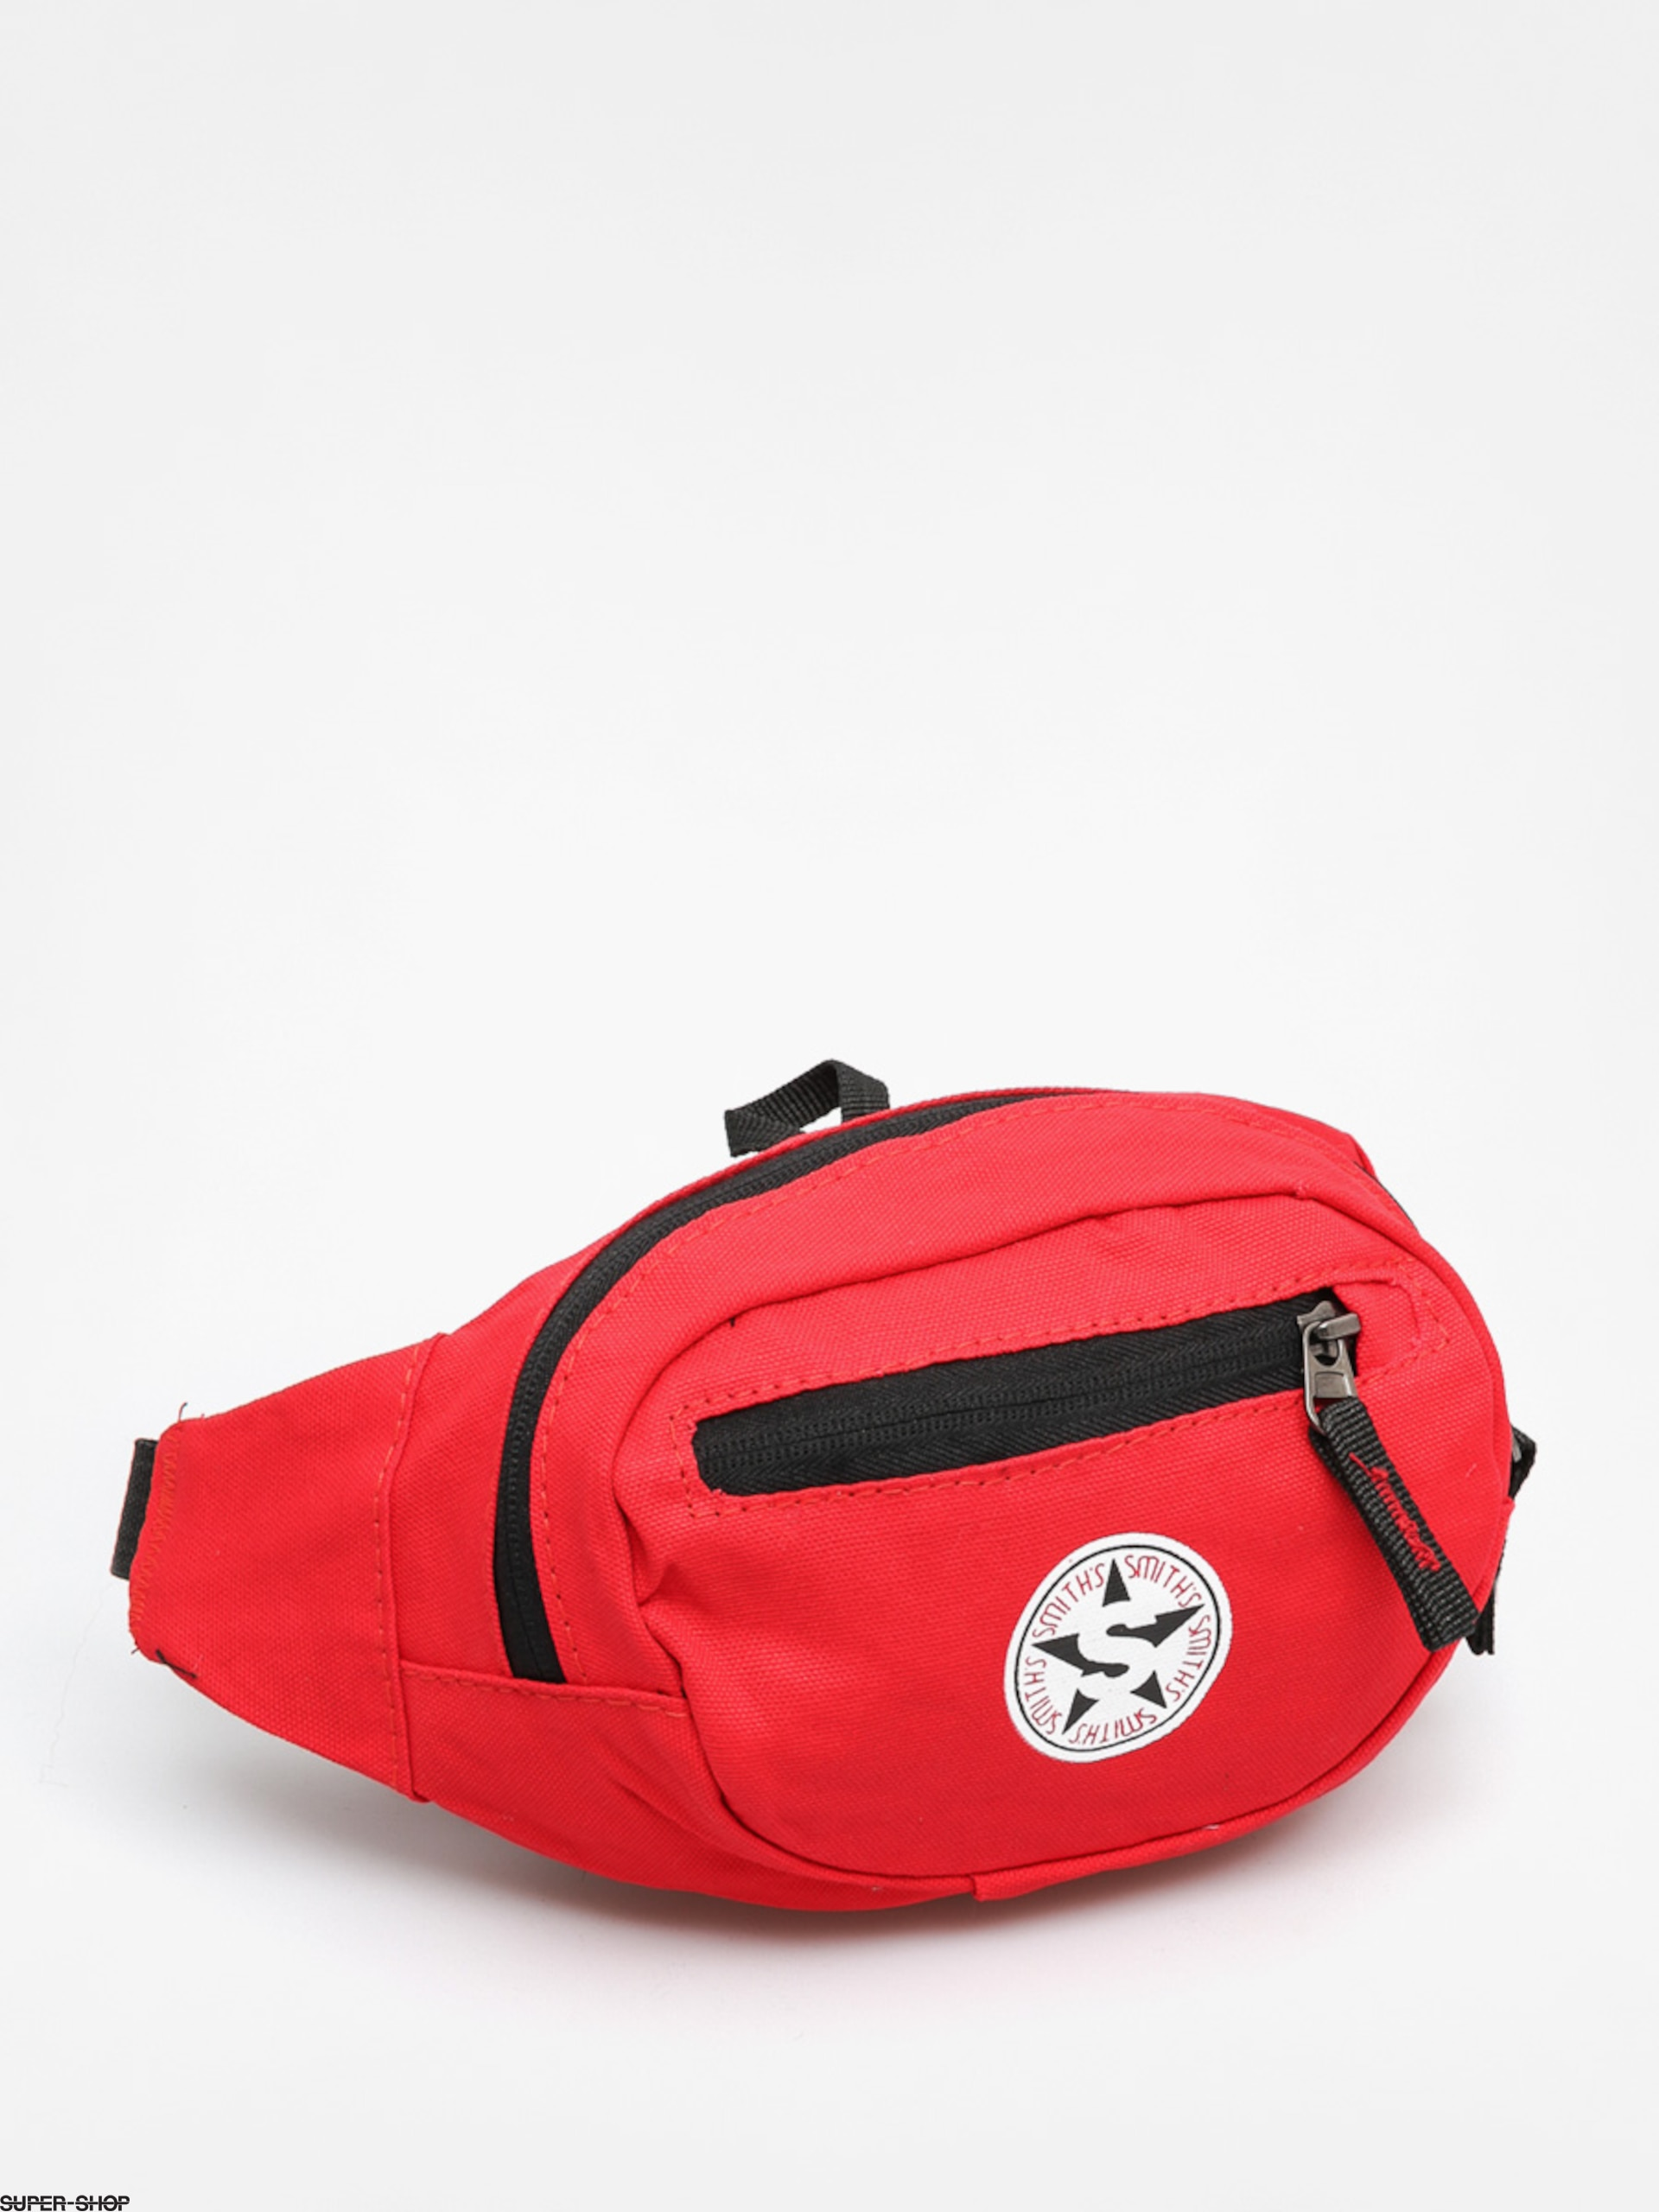 Smith's Bum bag 01 (red)